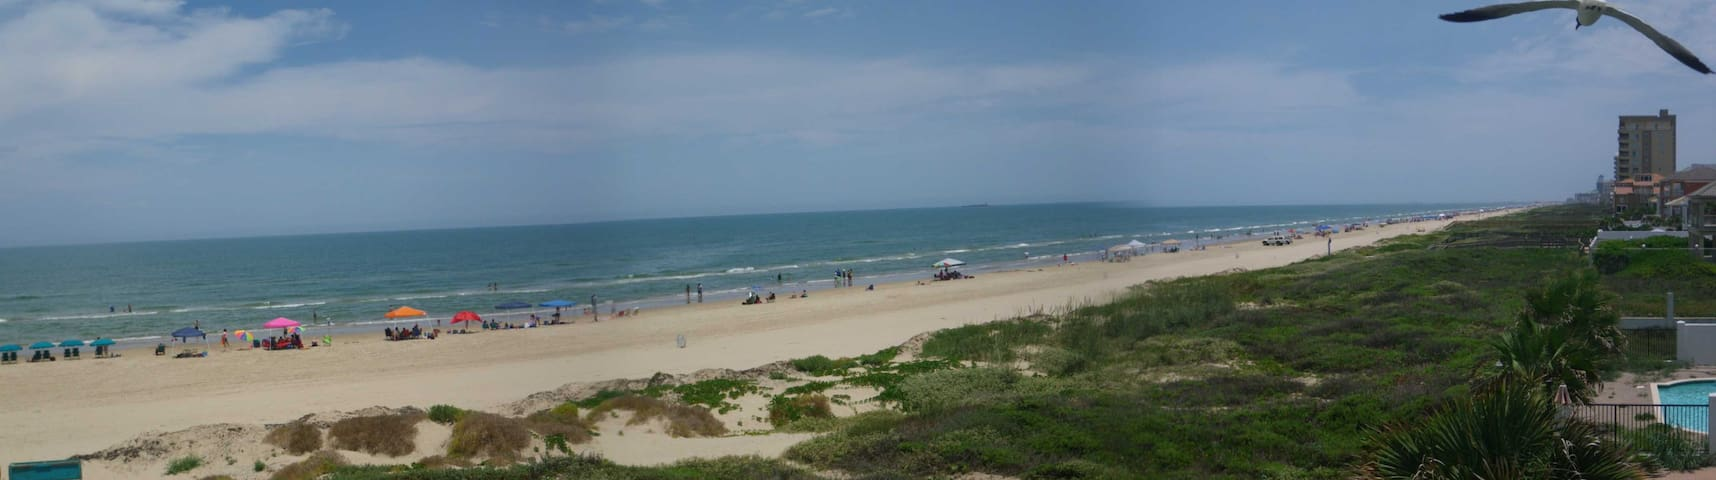 Beach Front Condo  - South Padre Island - Wohnung